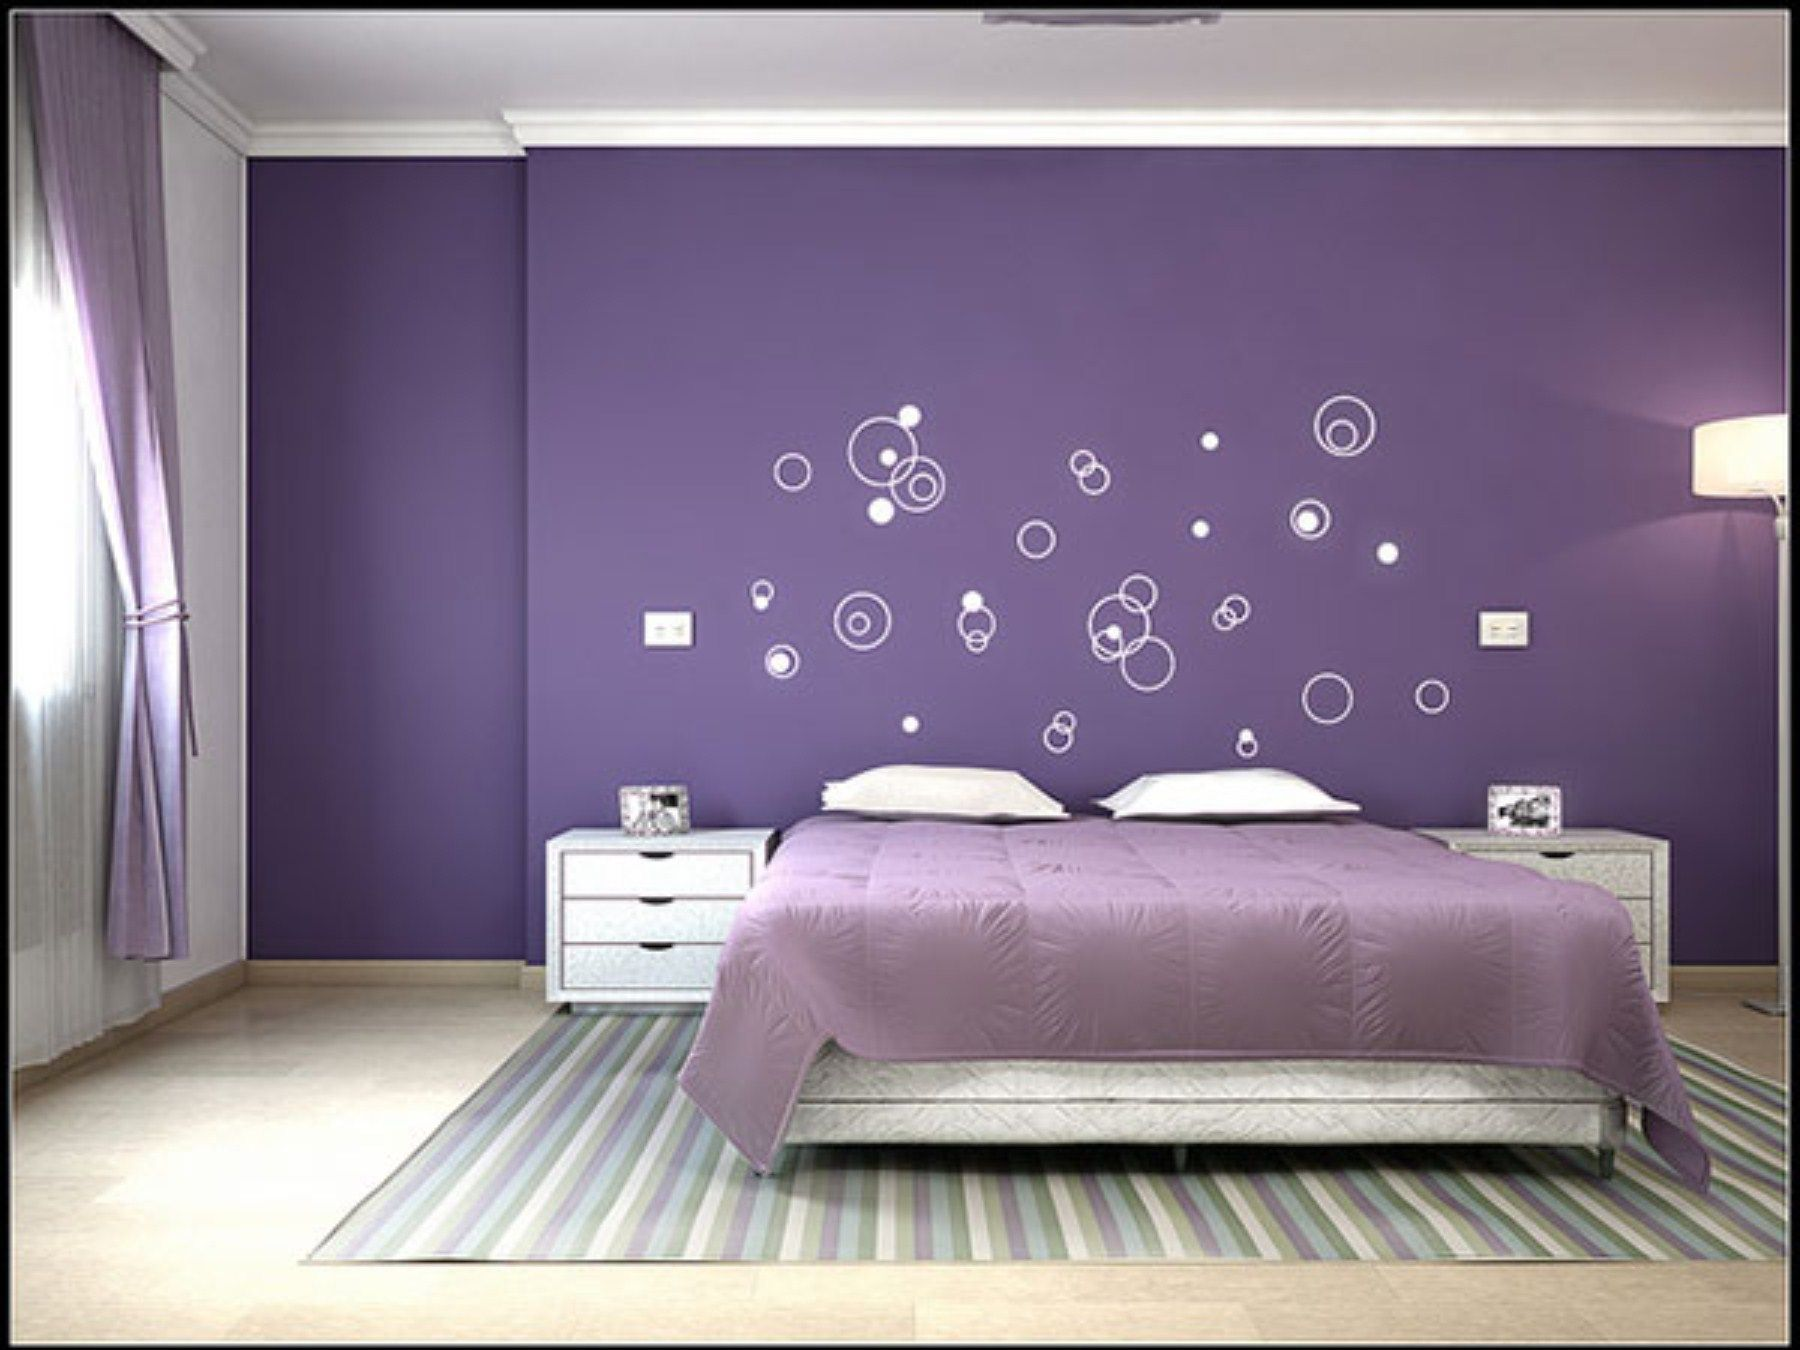 Bedroom Decor Colour Schemes purple bedroom color schemes with unique wall art | 25 bedroom